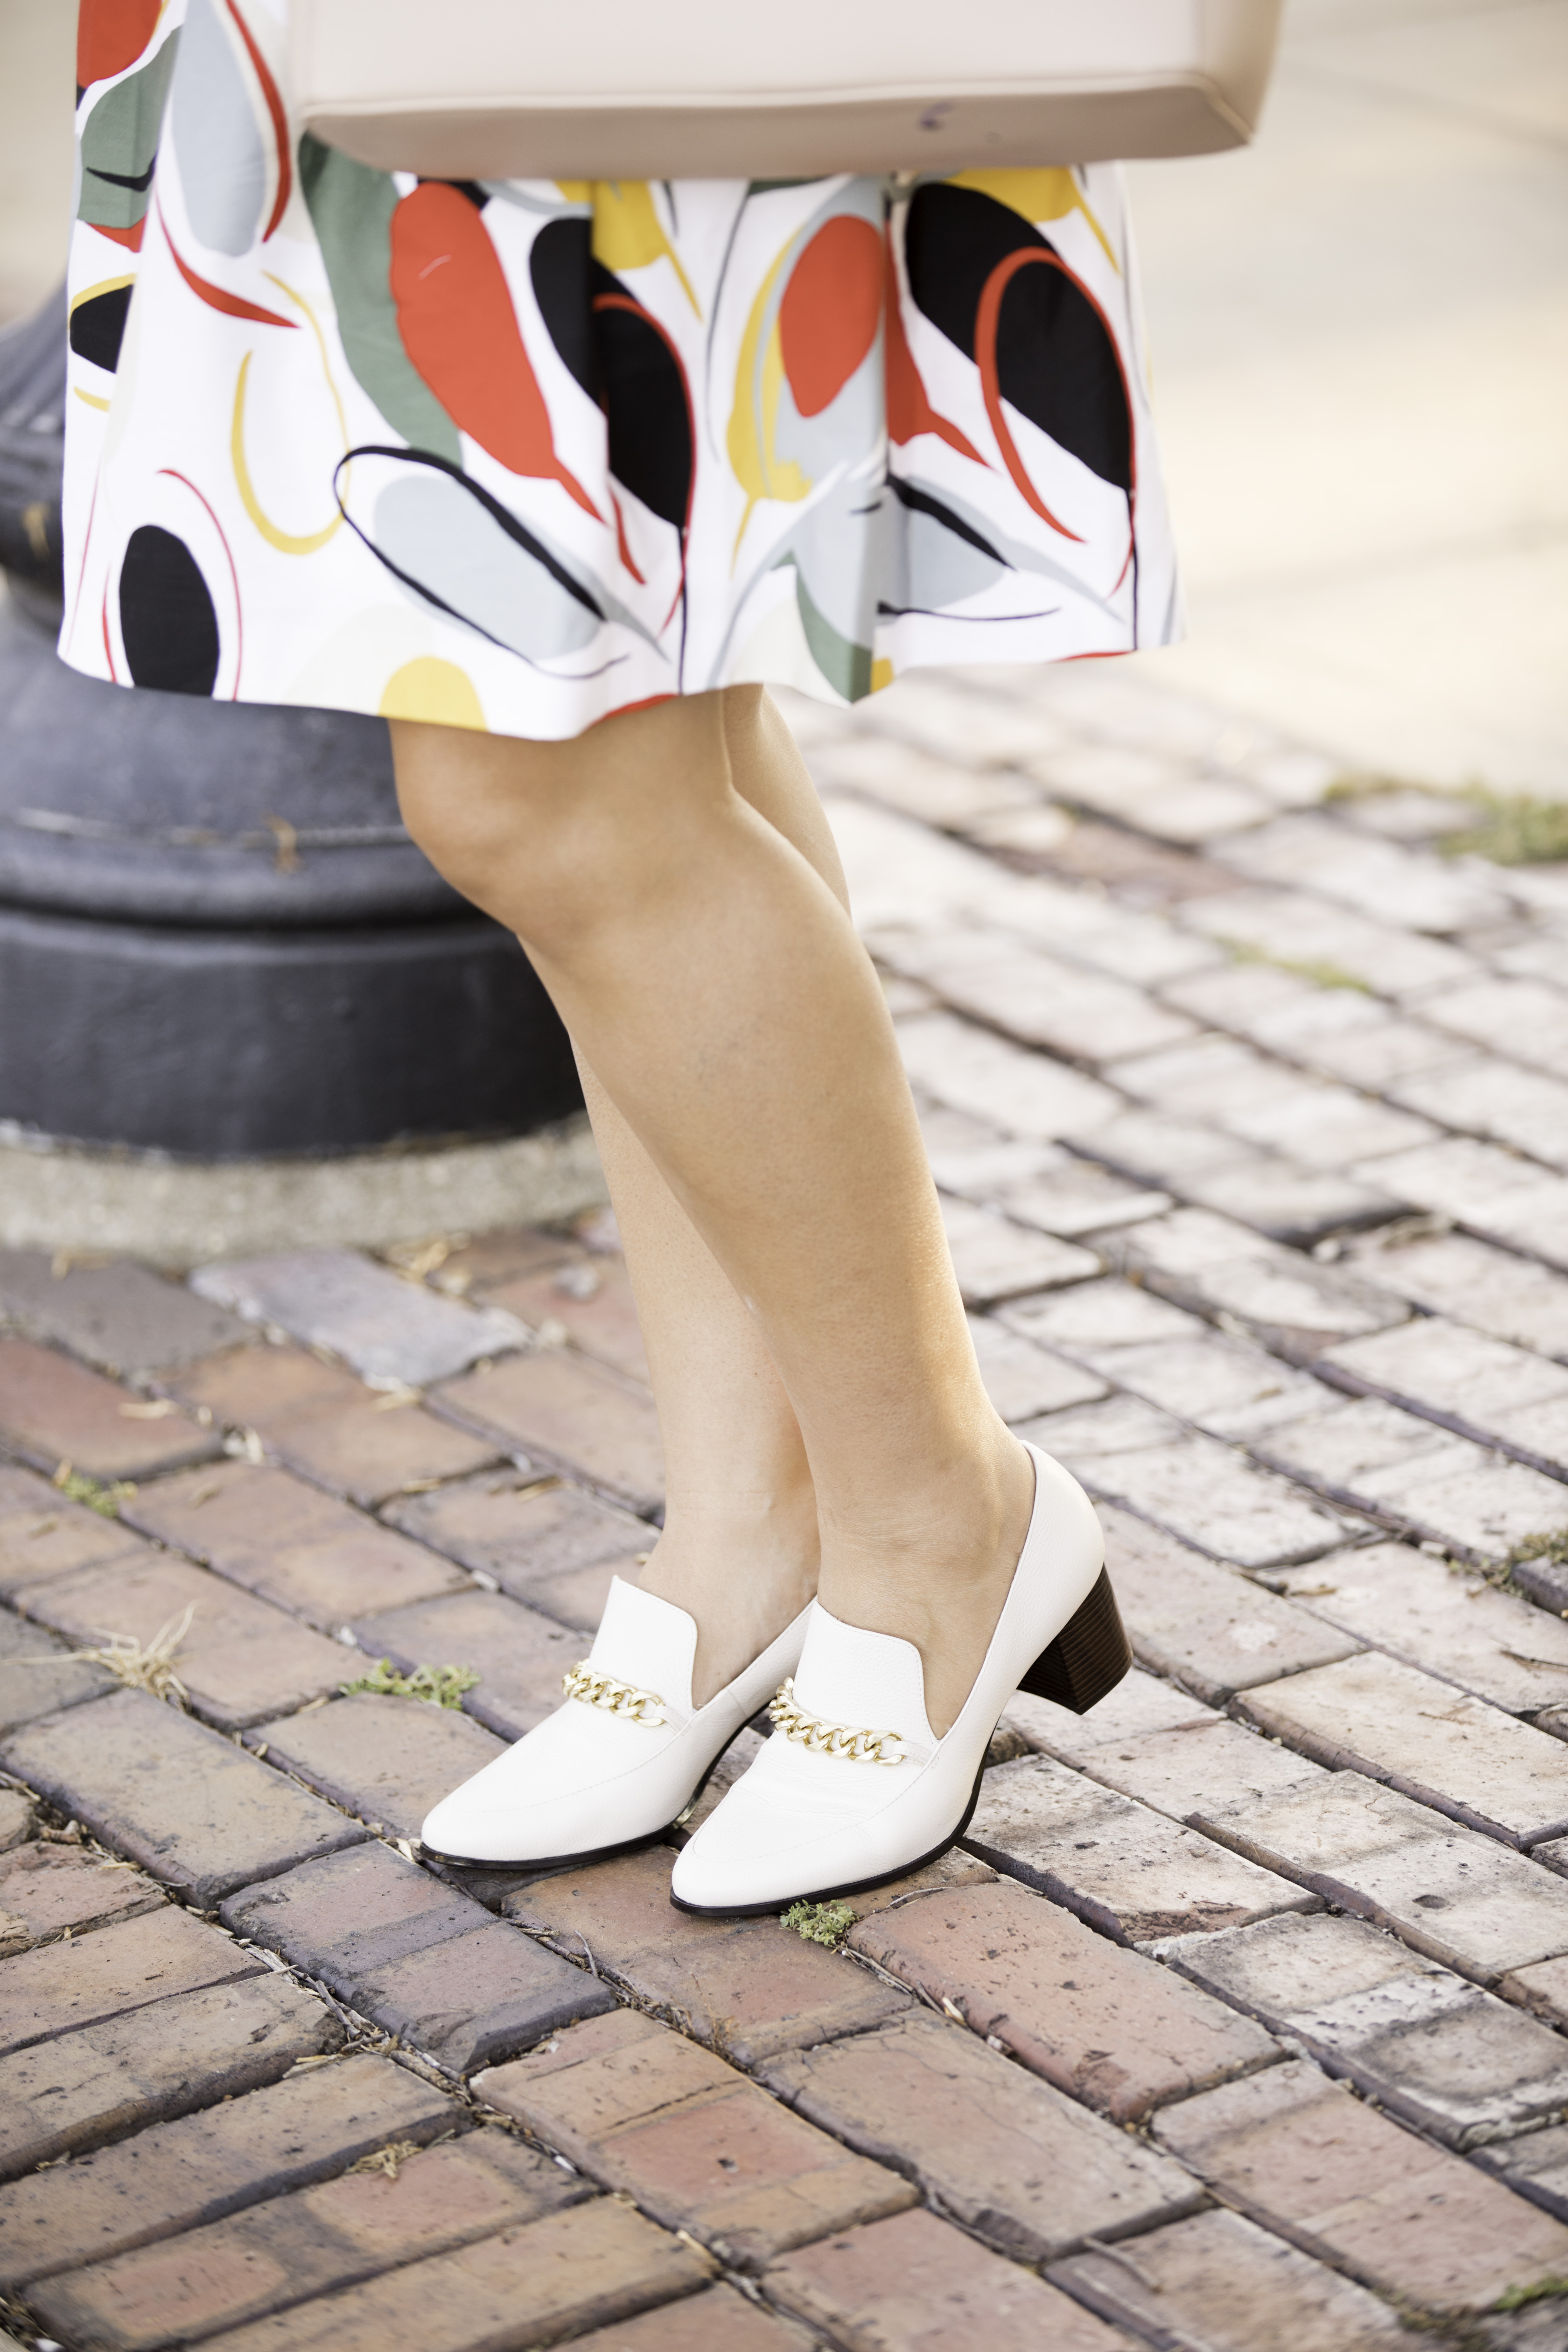 retro inspired look, anne klein dress for work,calvin klein chunky heel pumps, white work shoes